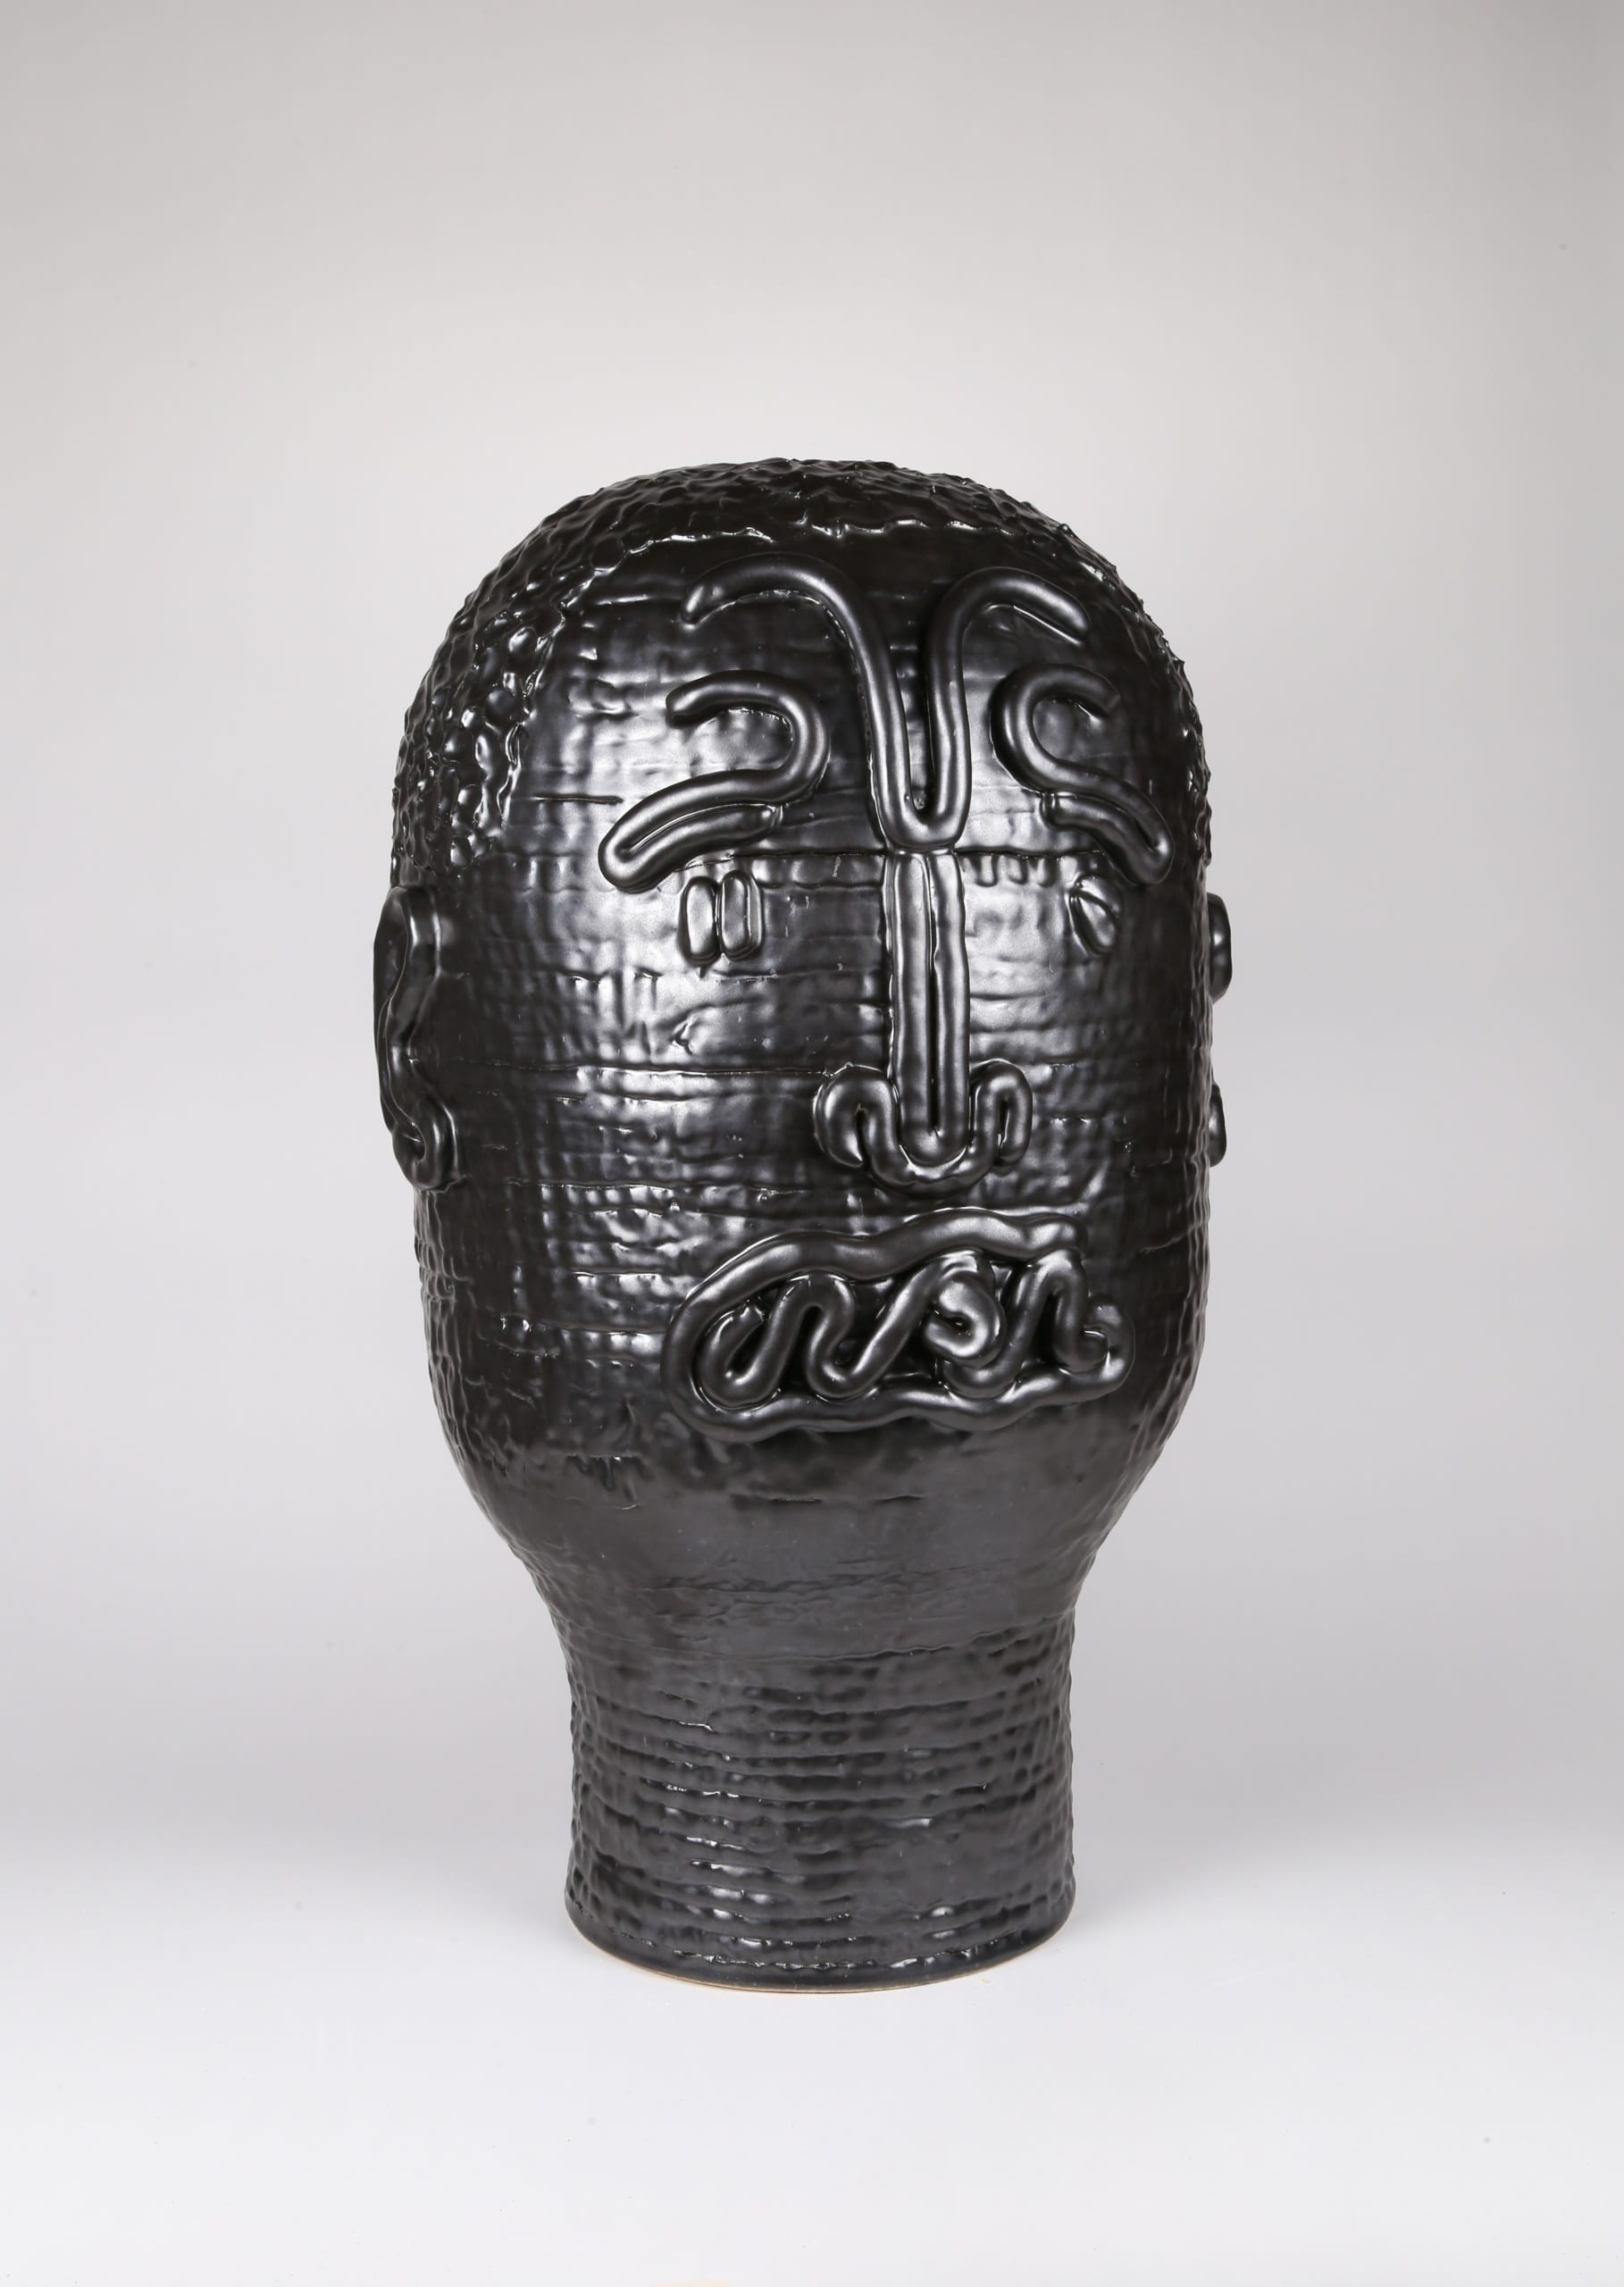 Color photograph with a frontal view of an abstract ceramic portrait head that appears to be made from a long coil of clay. The outlines of two eyes, a nose, a mouth, and two ears are affixed to its surface; the mouth appears tangled. The object is monochromatic (black), with a slight sheen to the glaze.